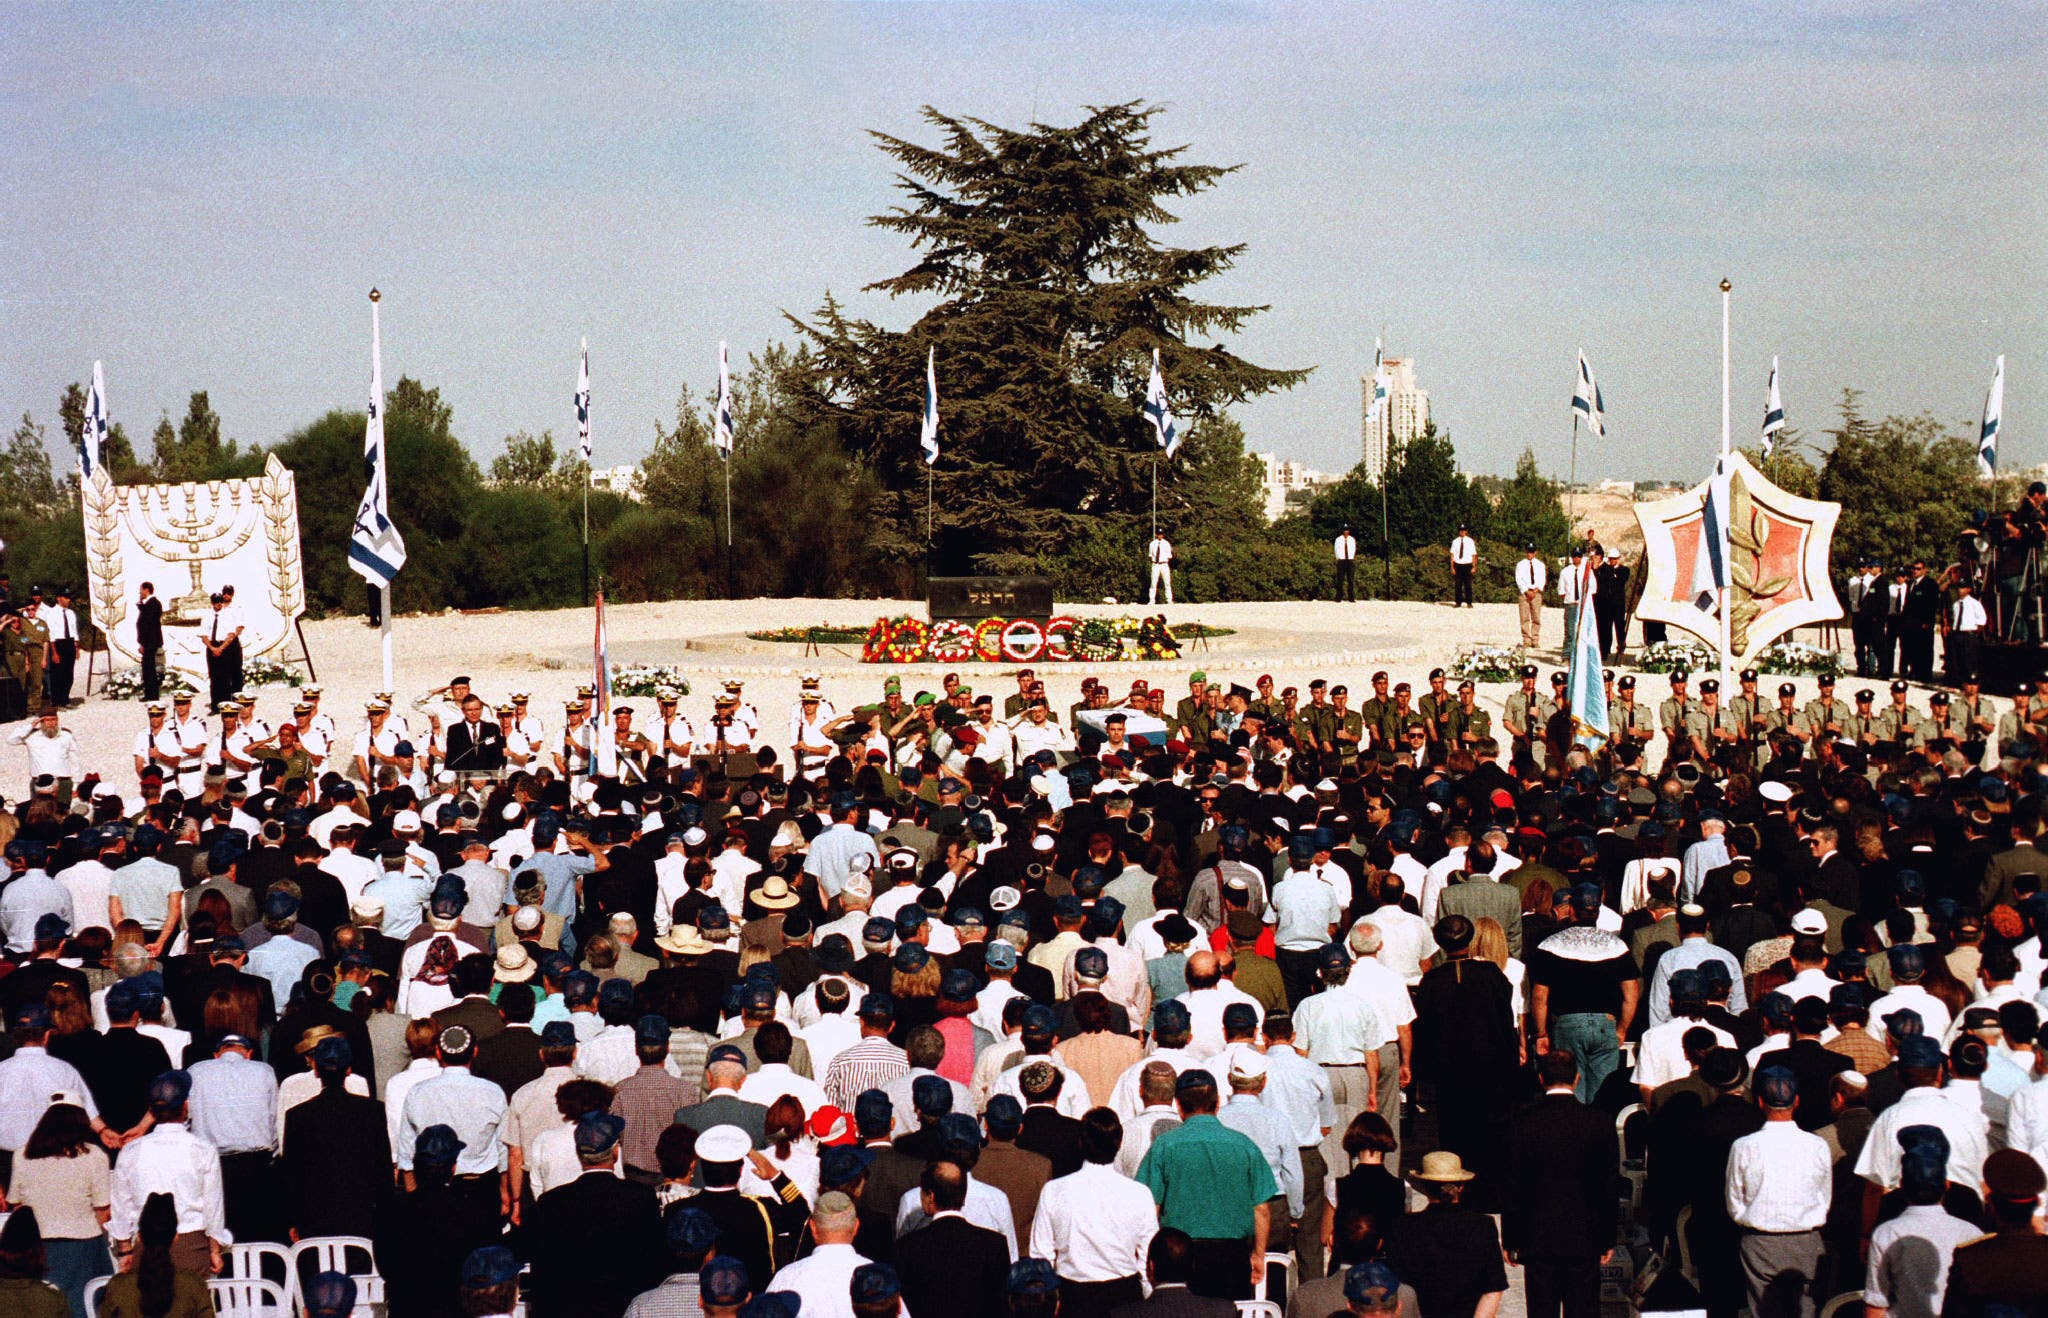 A general view of the funeral of slain Prime Minister Yitzhak Rabin on Mt. Herzl military cemetery. (Reuters)